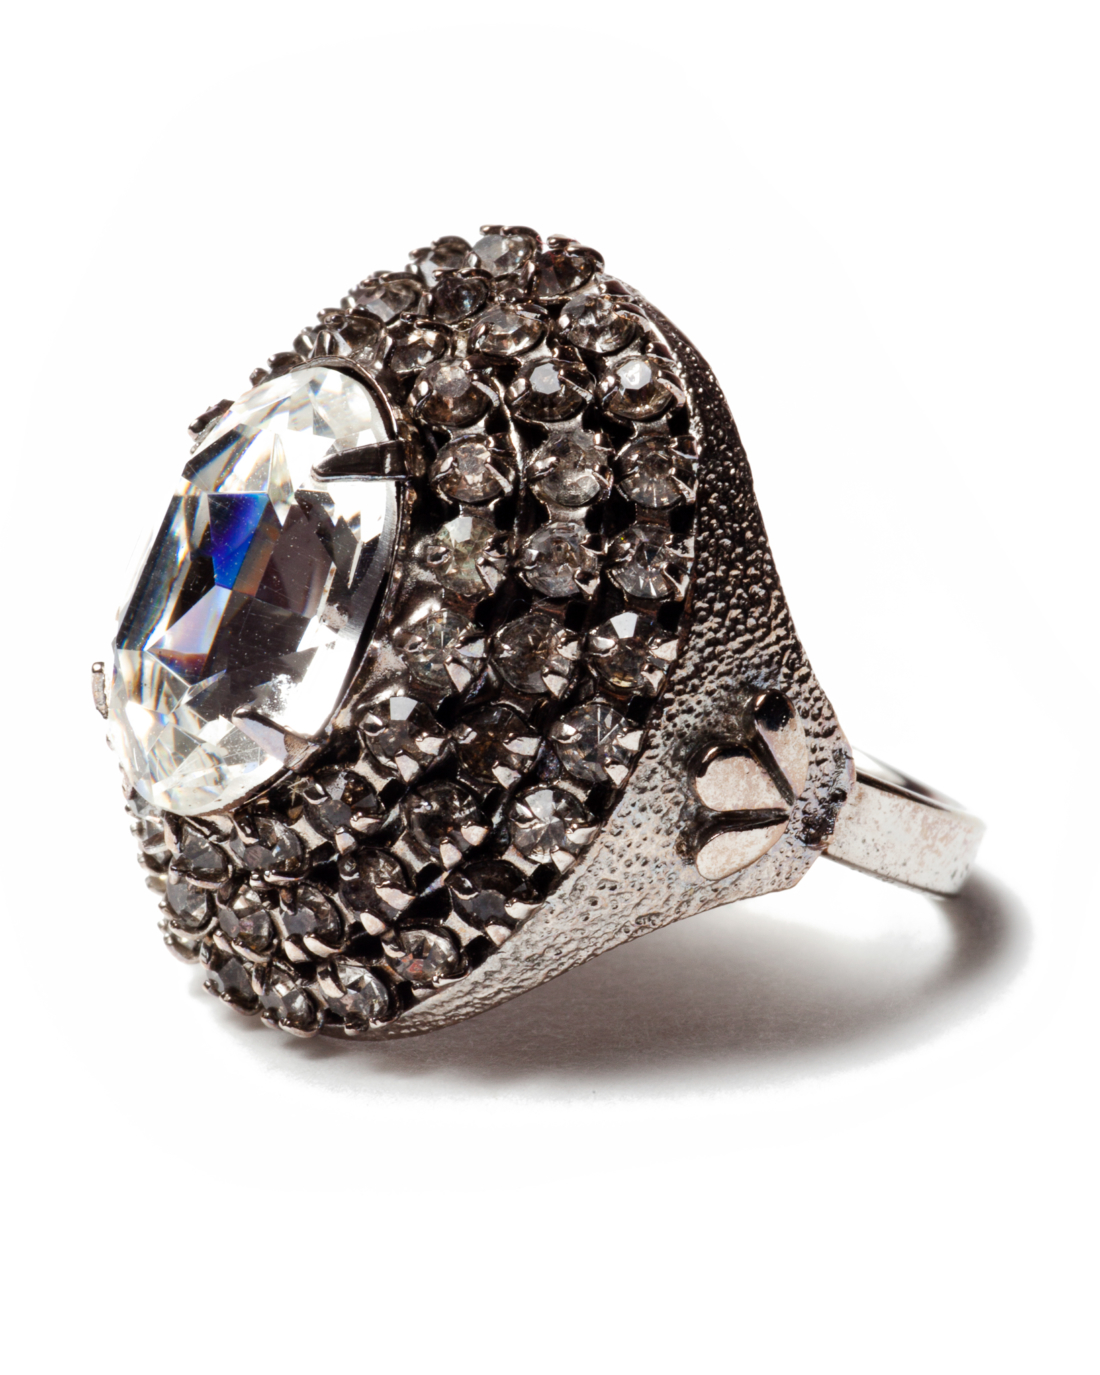 Crystal Diamante Cluster Silver Cocktail Ring, circa 1960's